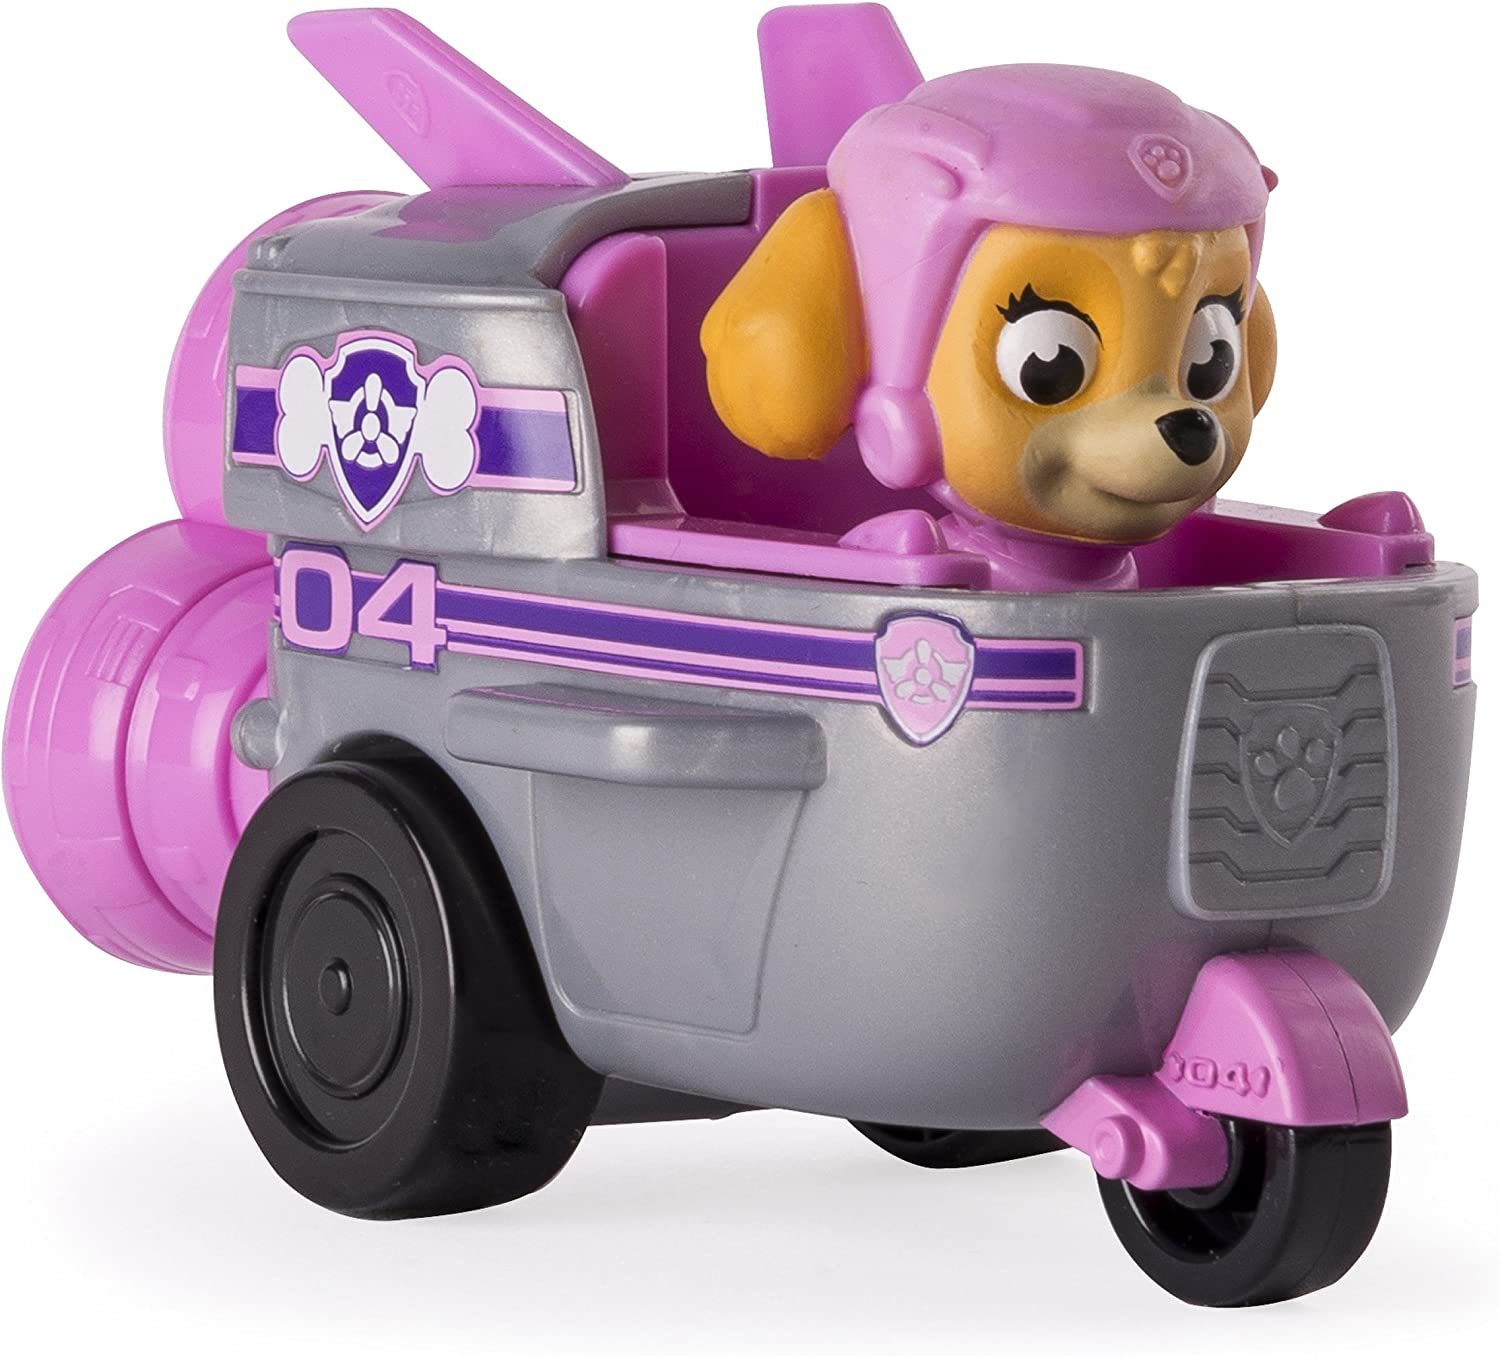 Paw Patrol Skye/'s Rocket Ship Vehicle And Dog Figure Children Kids Toy Gift Idea